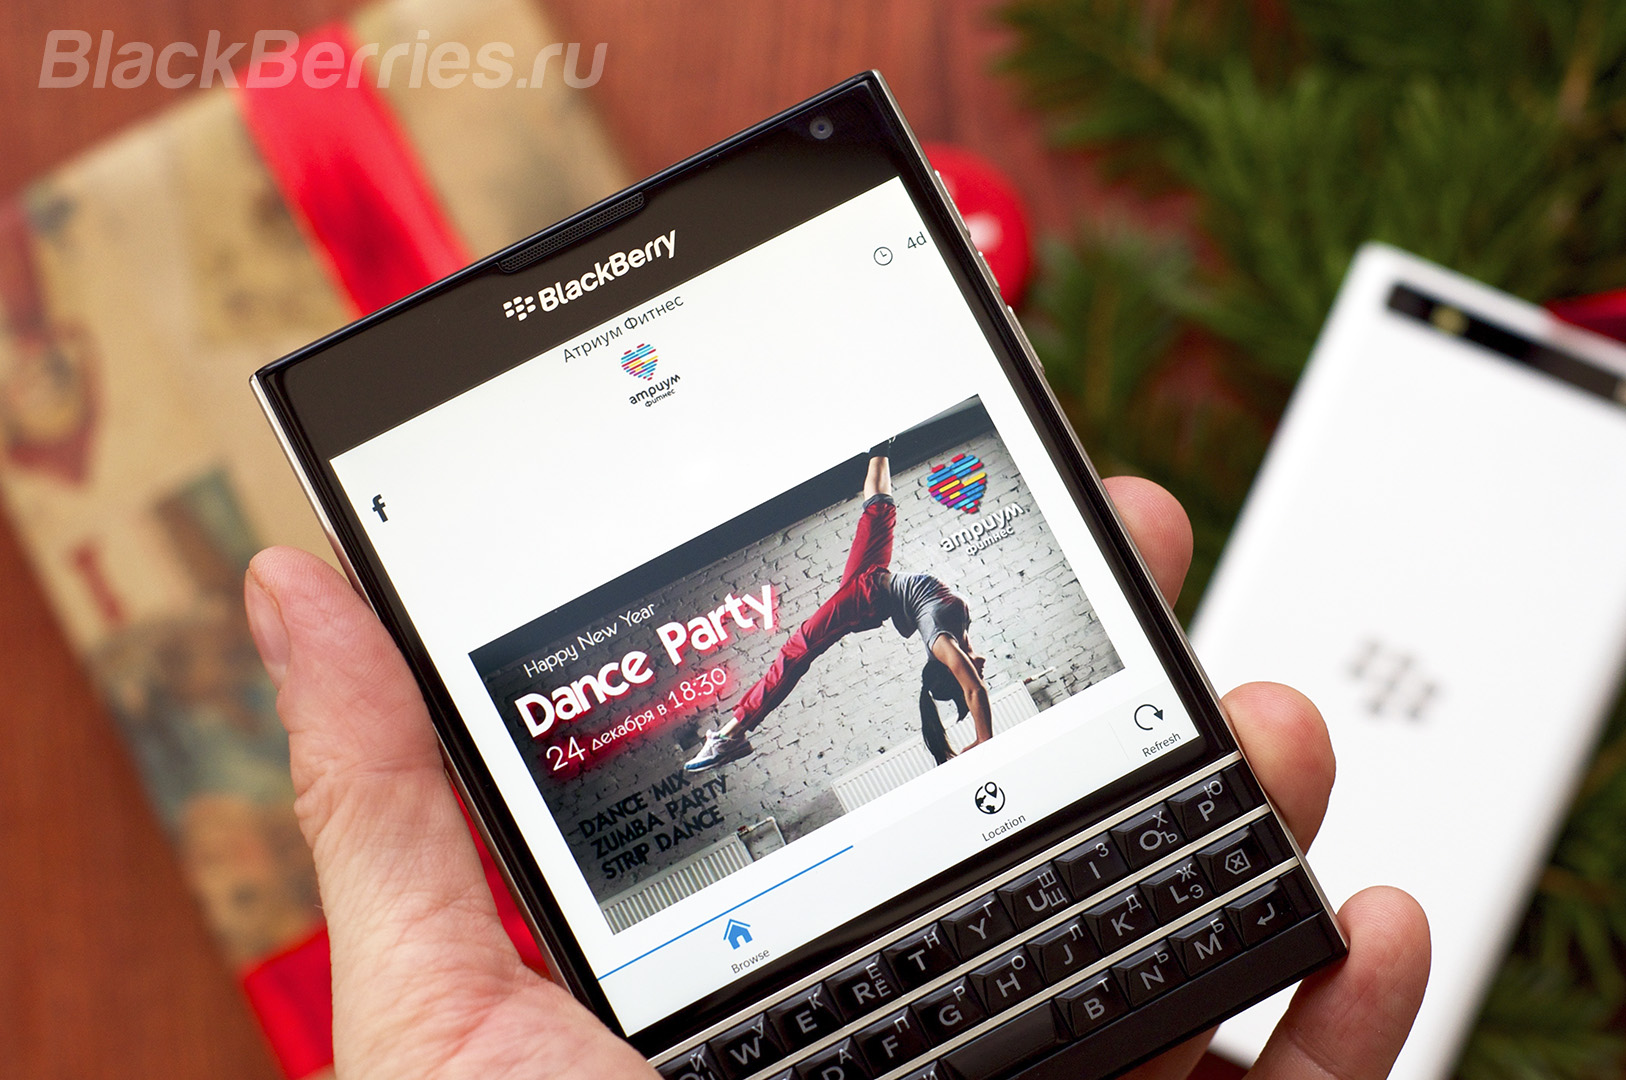 BlackBerry-New-Year-Apps-11